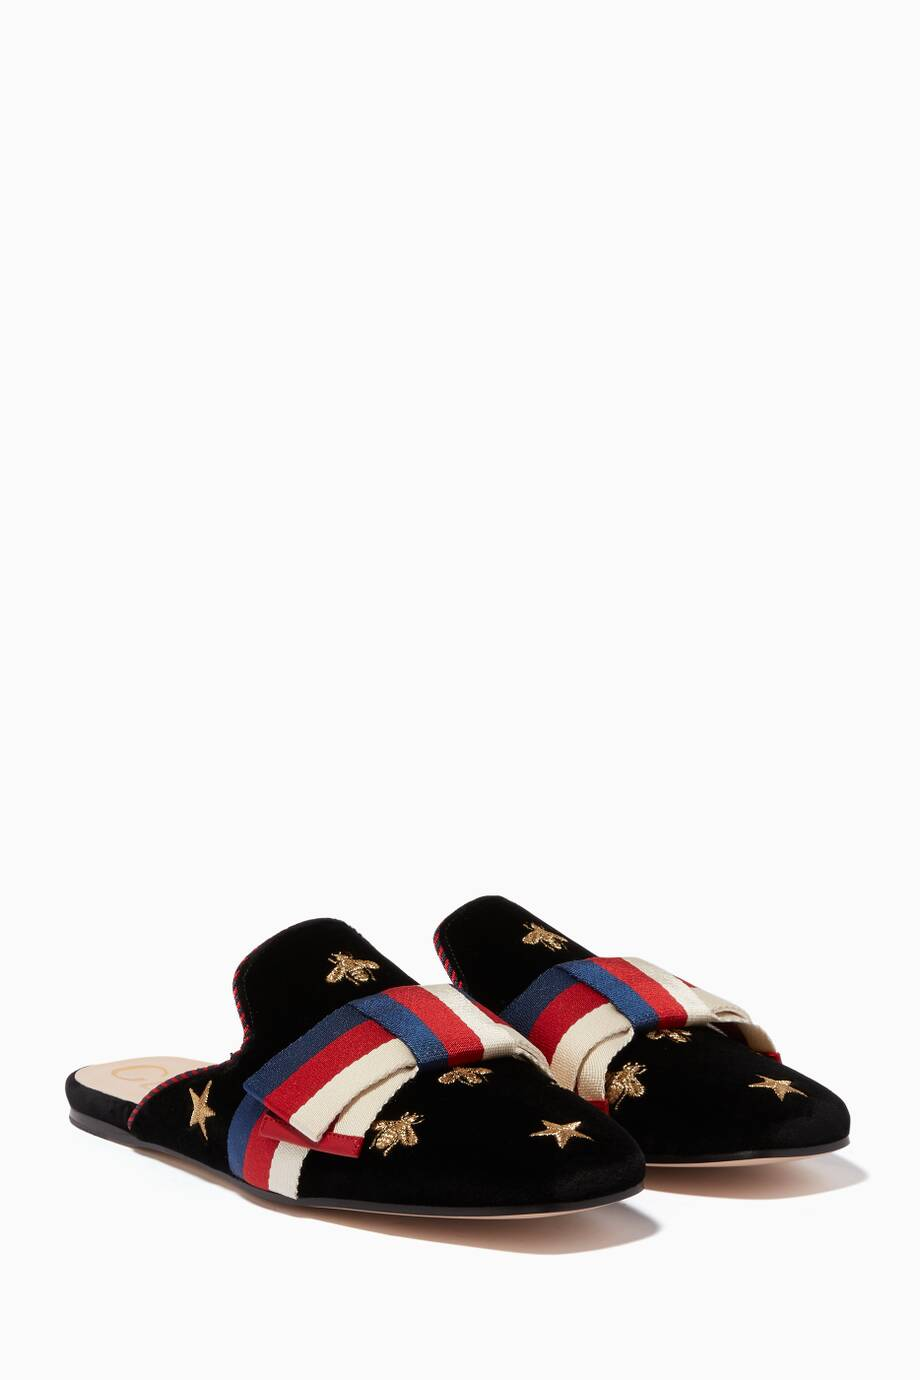 364cd9a68 Shop Luxury Gucci Black Embroidered Velvet Sylvie Bow Loafers ...